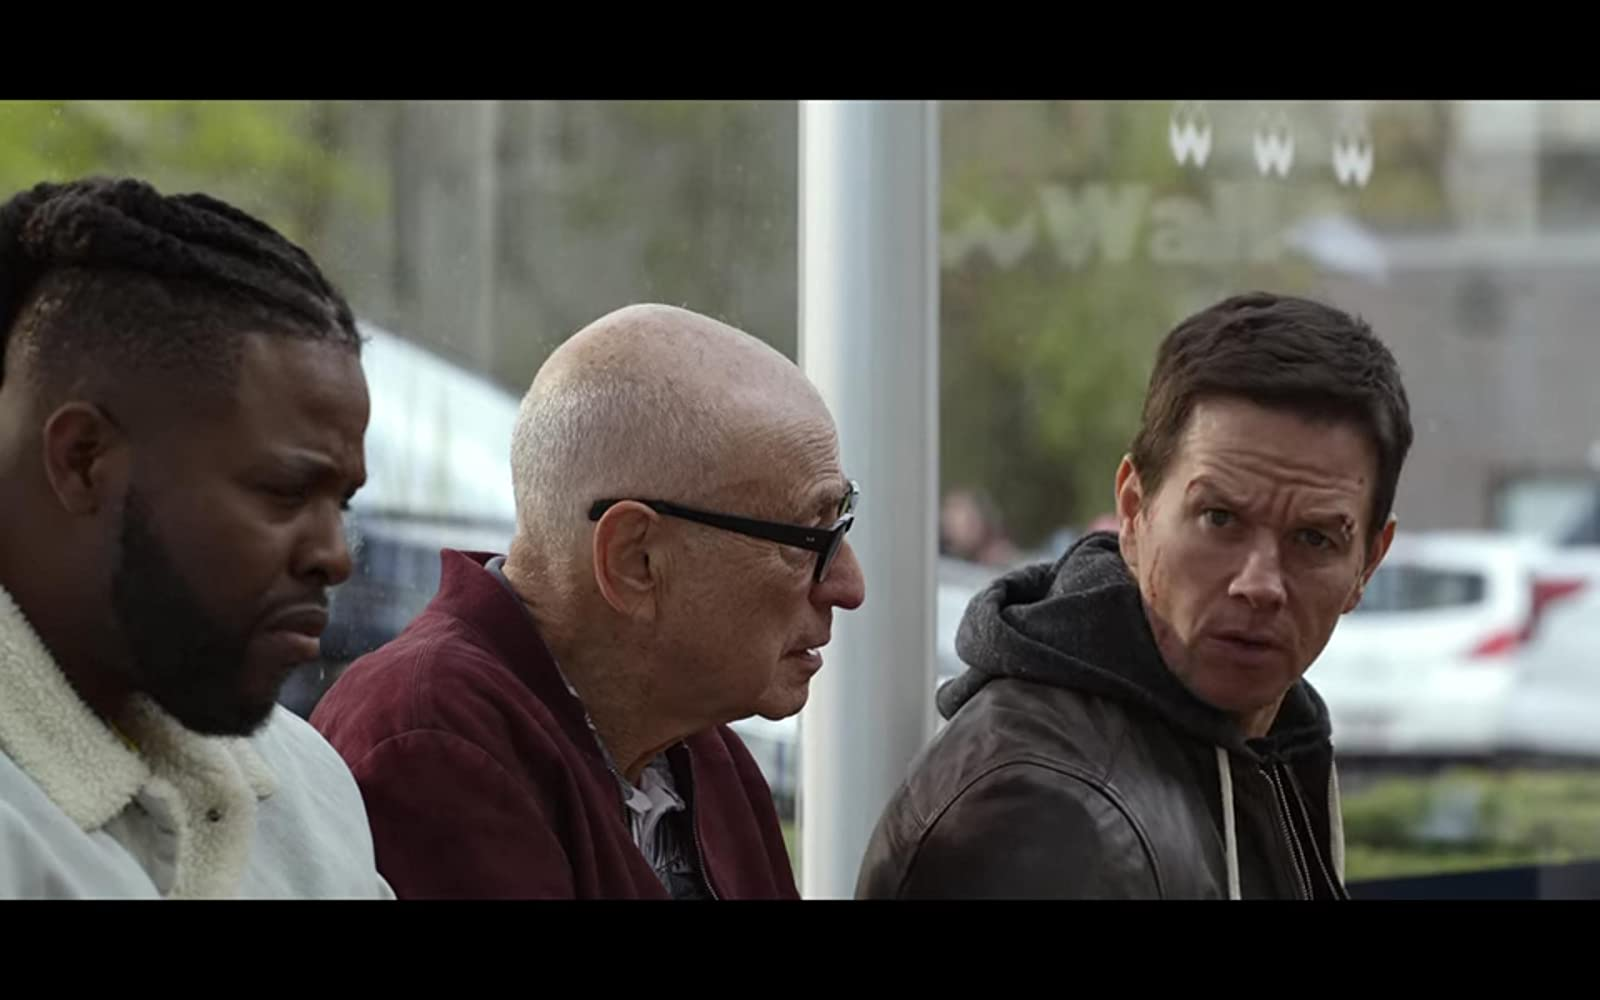 Mark Wahlberg, Alan Arkin, and Winston Duke in Spenser Confidential (2020)